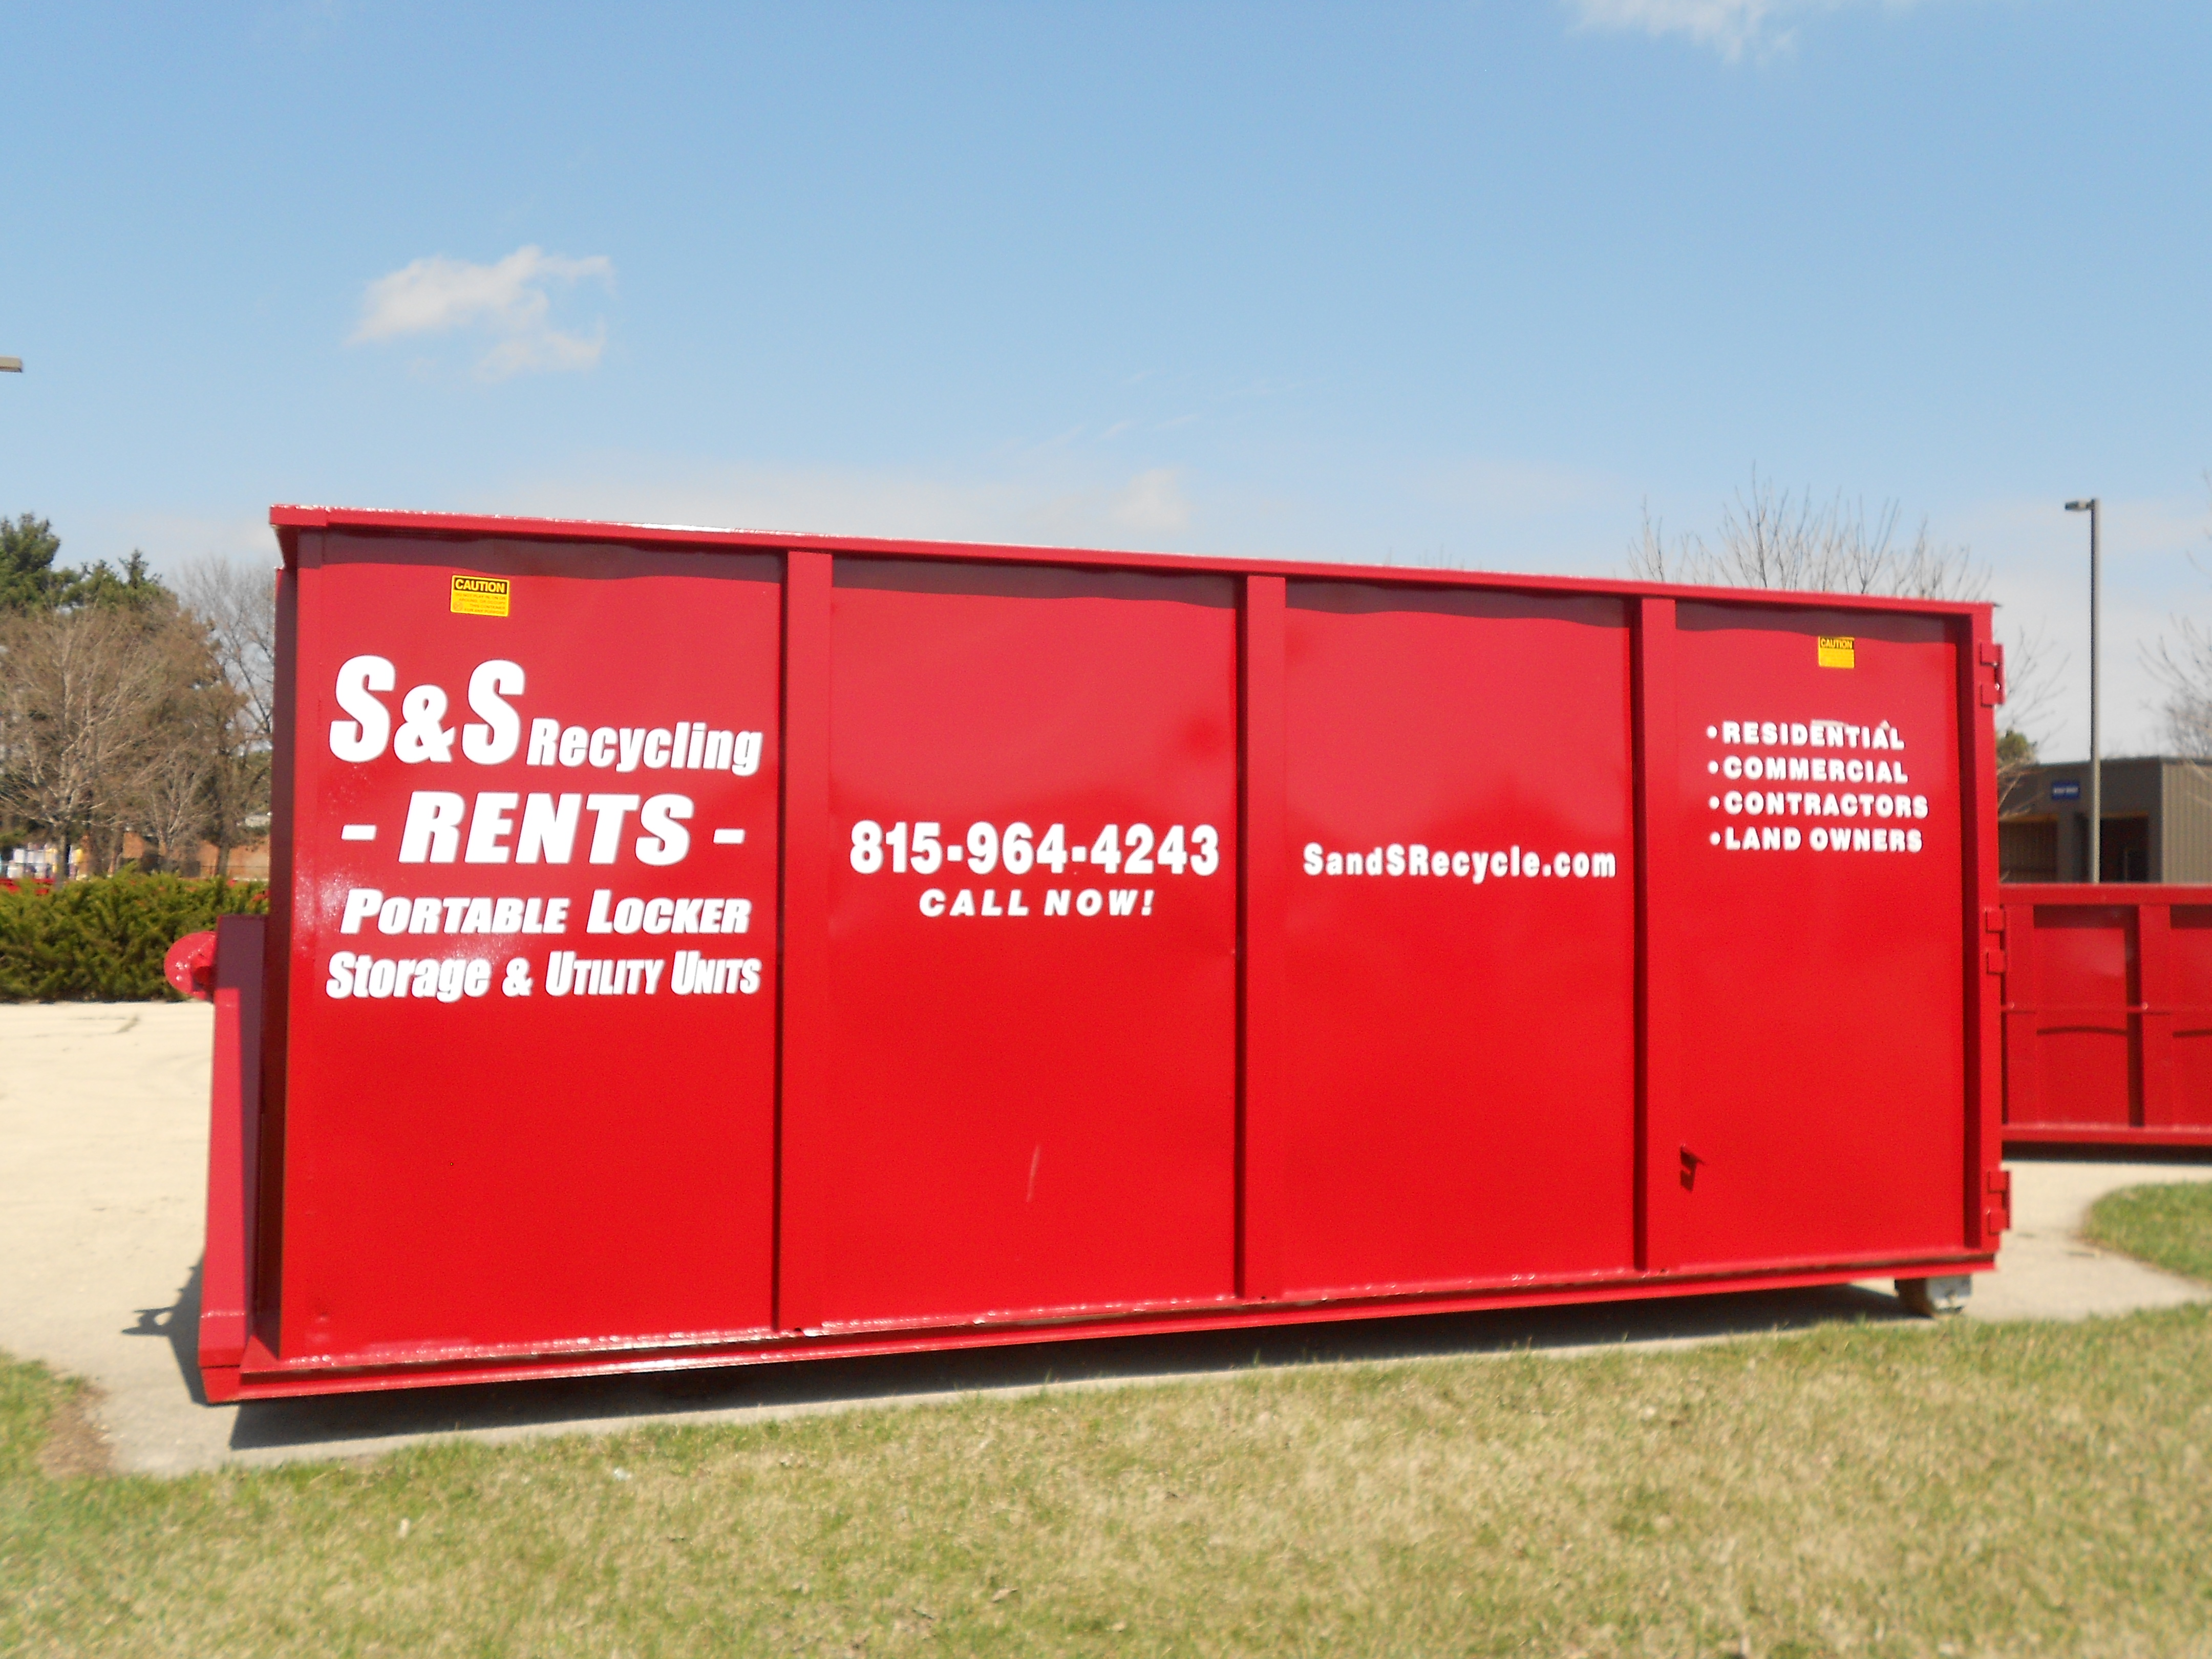 Call today to reserve your storage unit at 815-964-4243.